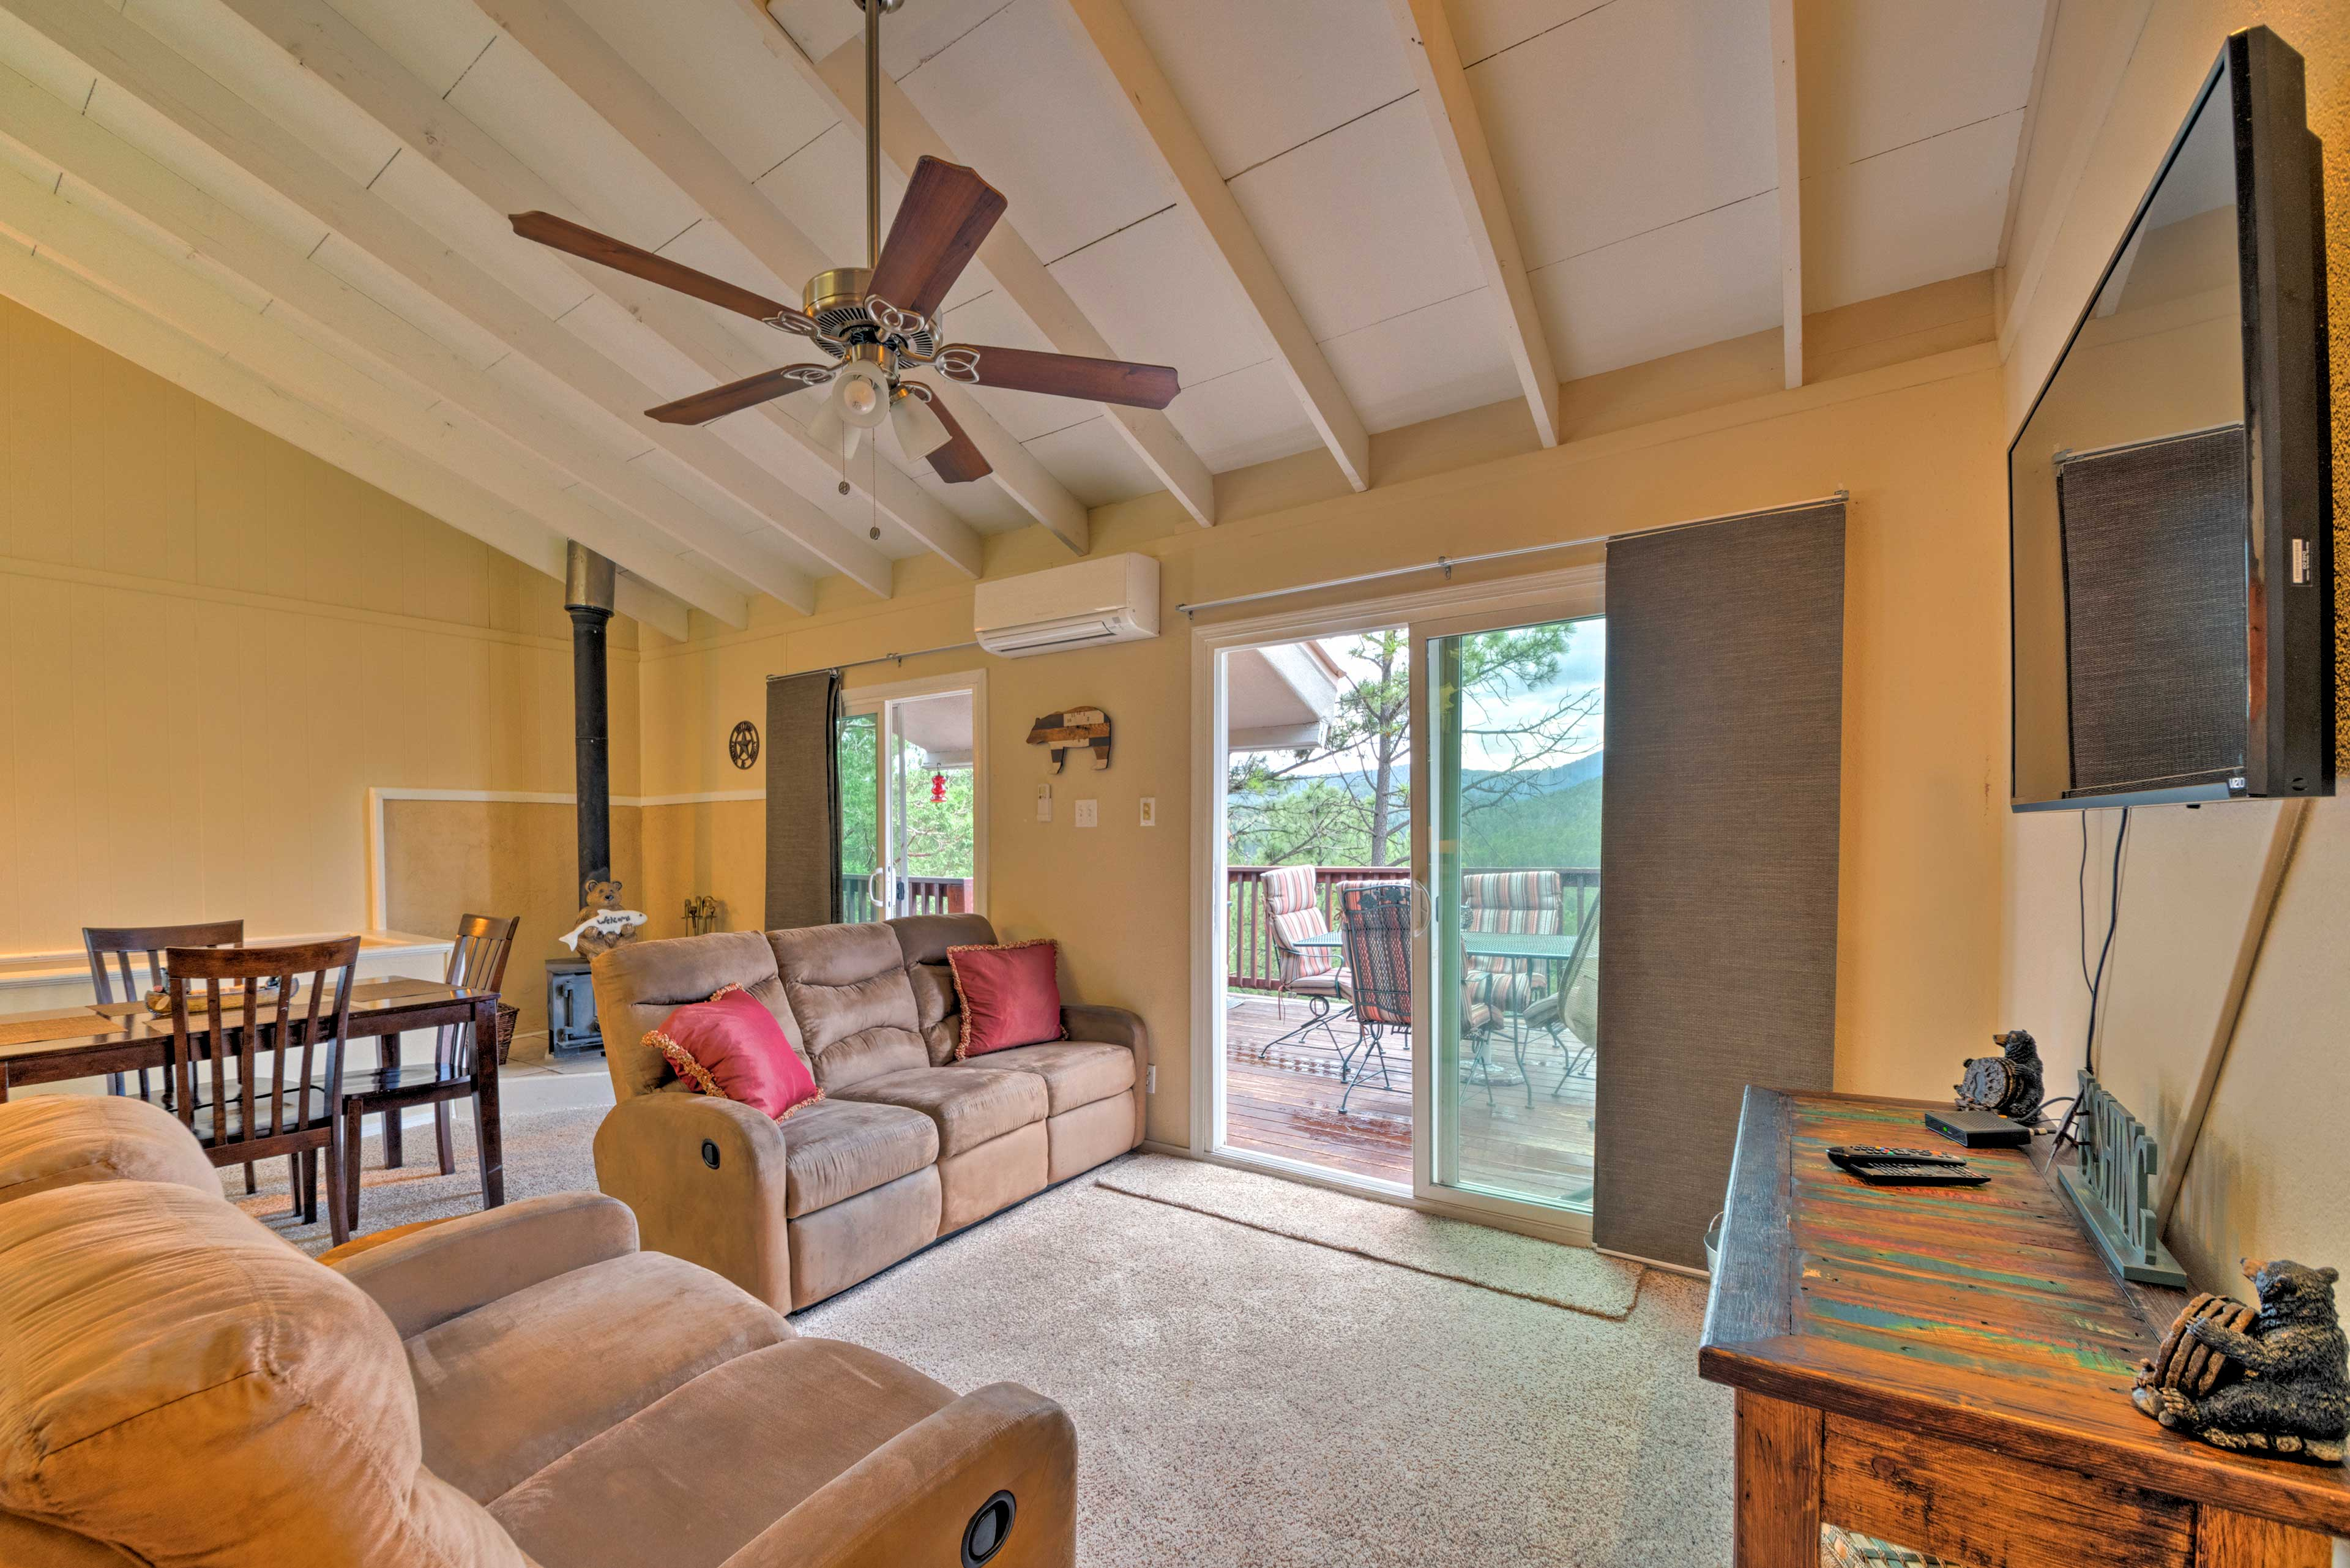 Access the deck from the sliding glass doors.